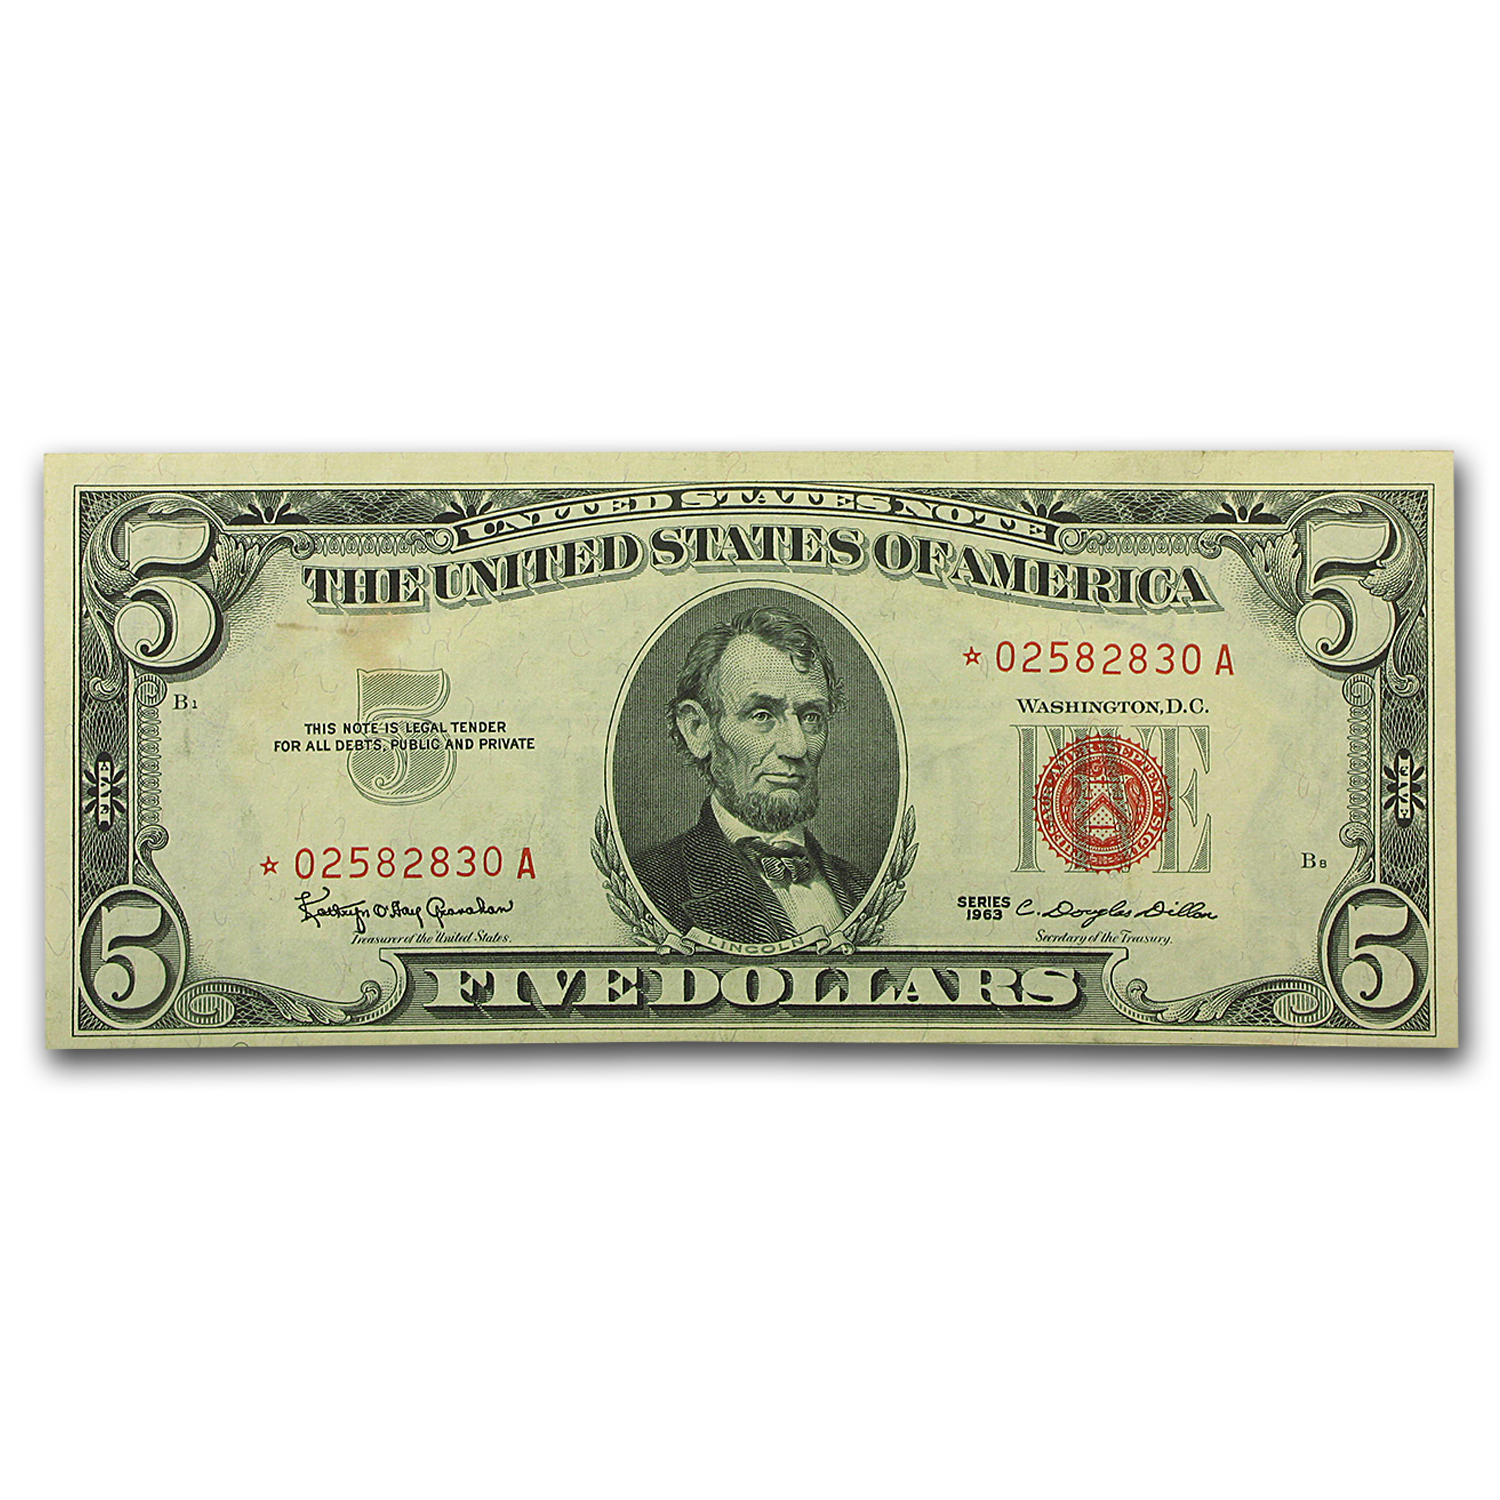 1963* $5.00 U.S. Note Red Seal AU (Star Note)